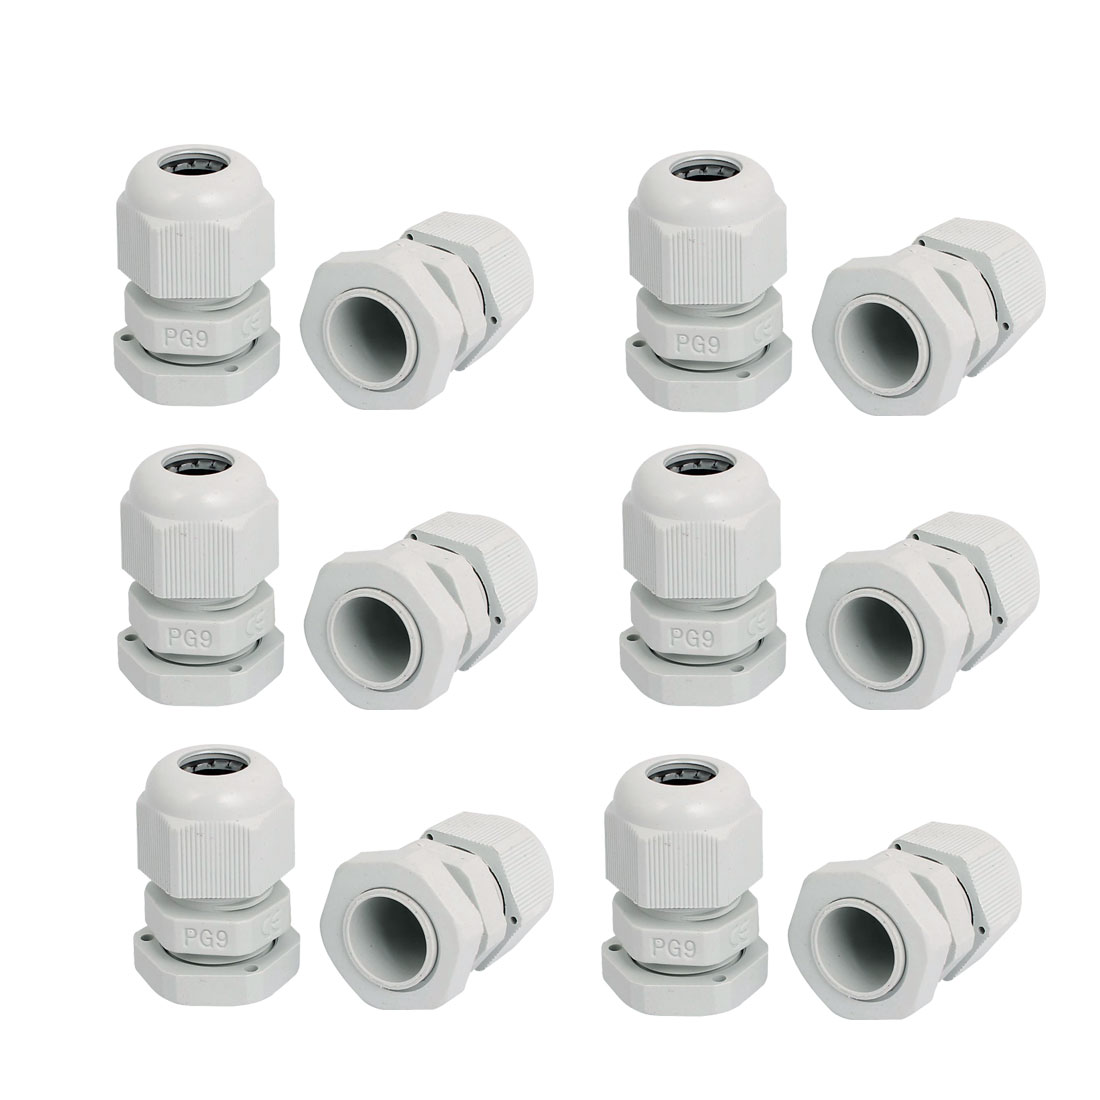 PG9 Waterproof Wire Cable Glands Clamp White Plastic Connector 12pcs